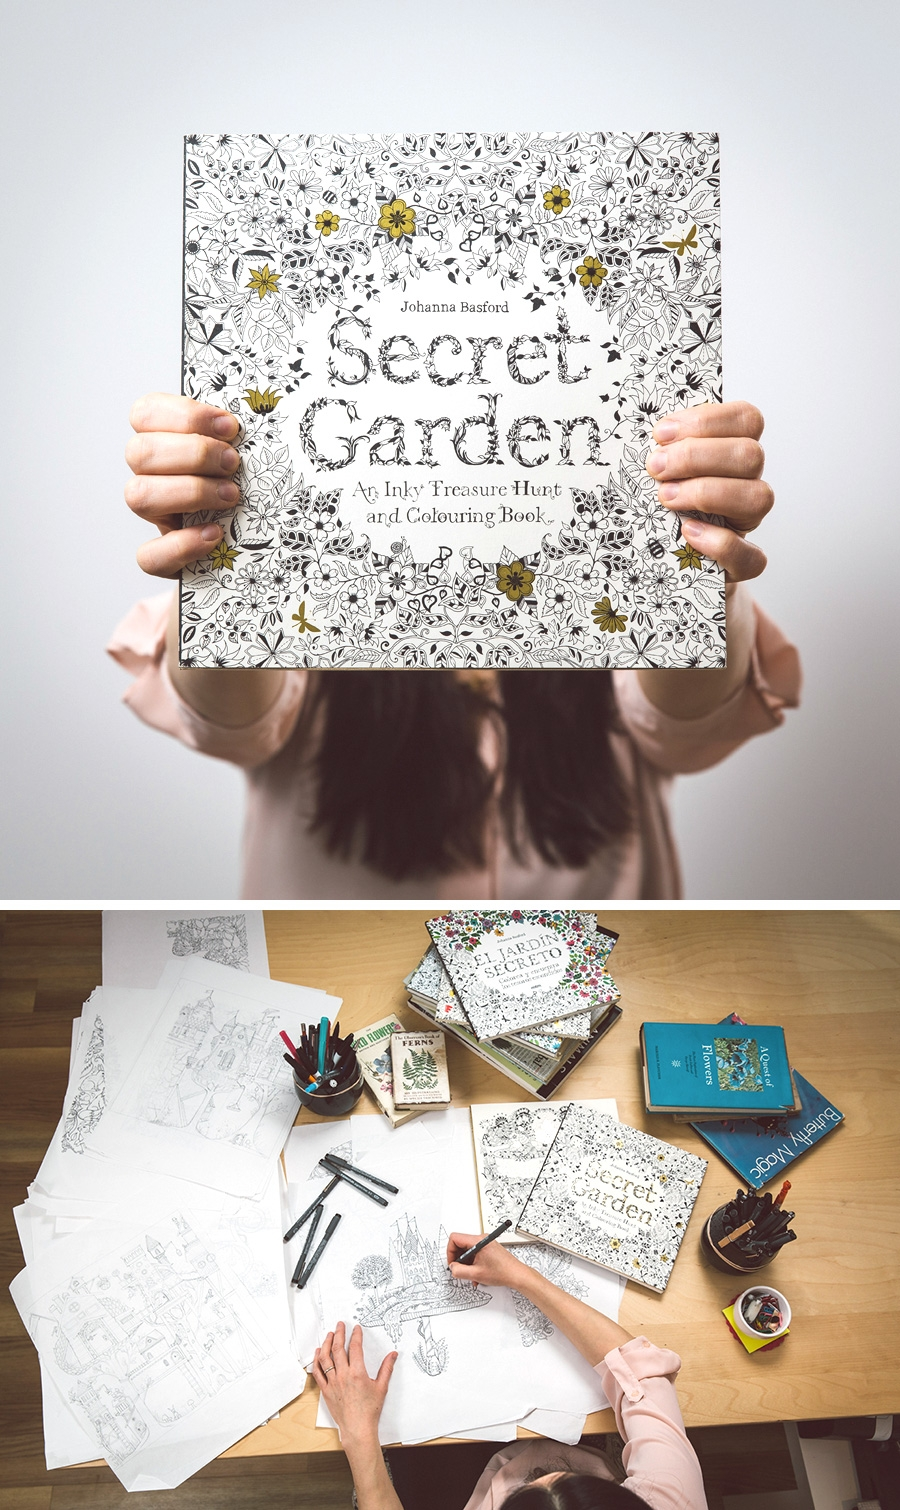 Adult coloring books for pc download - Buy Johanna Basford S Books From Amazon Secret Garden Enchanted Forest Lost Ocean Magical Jungle And Johanna S Christmas Pre Order